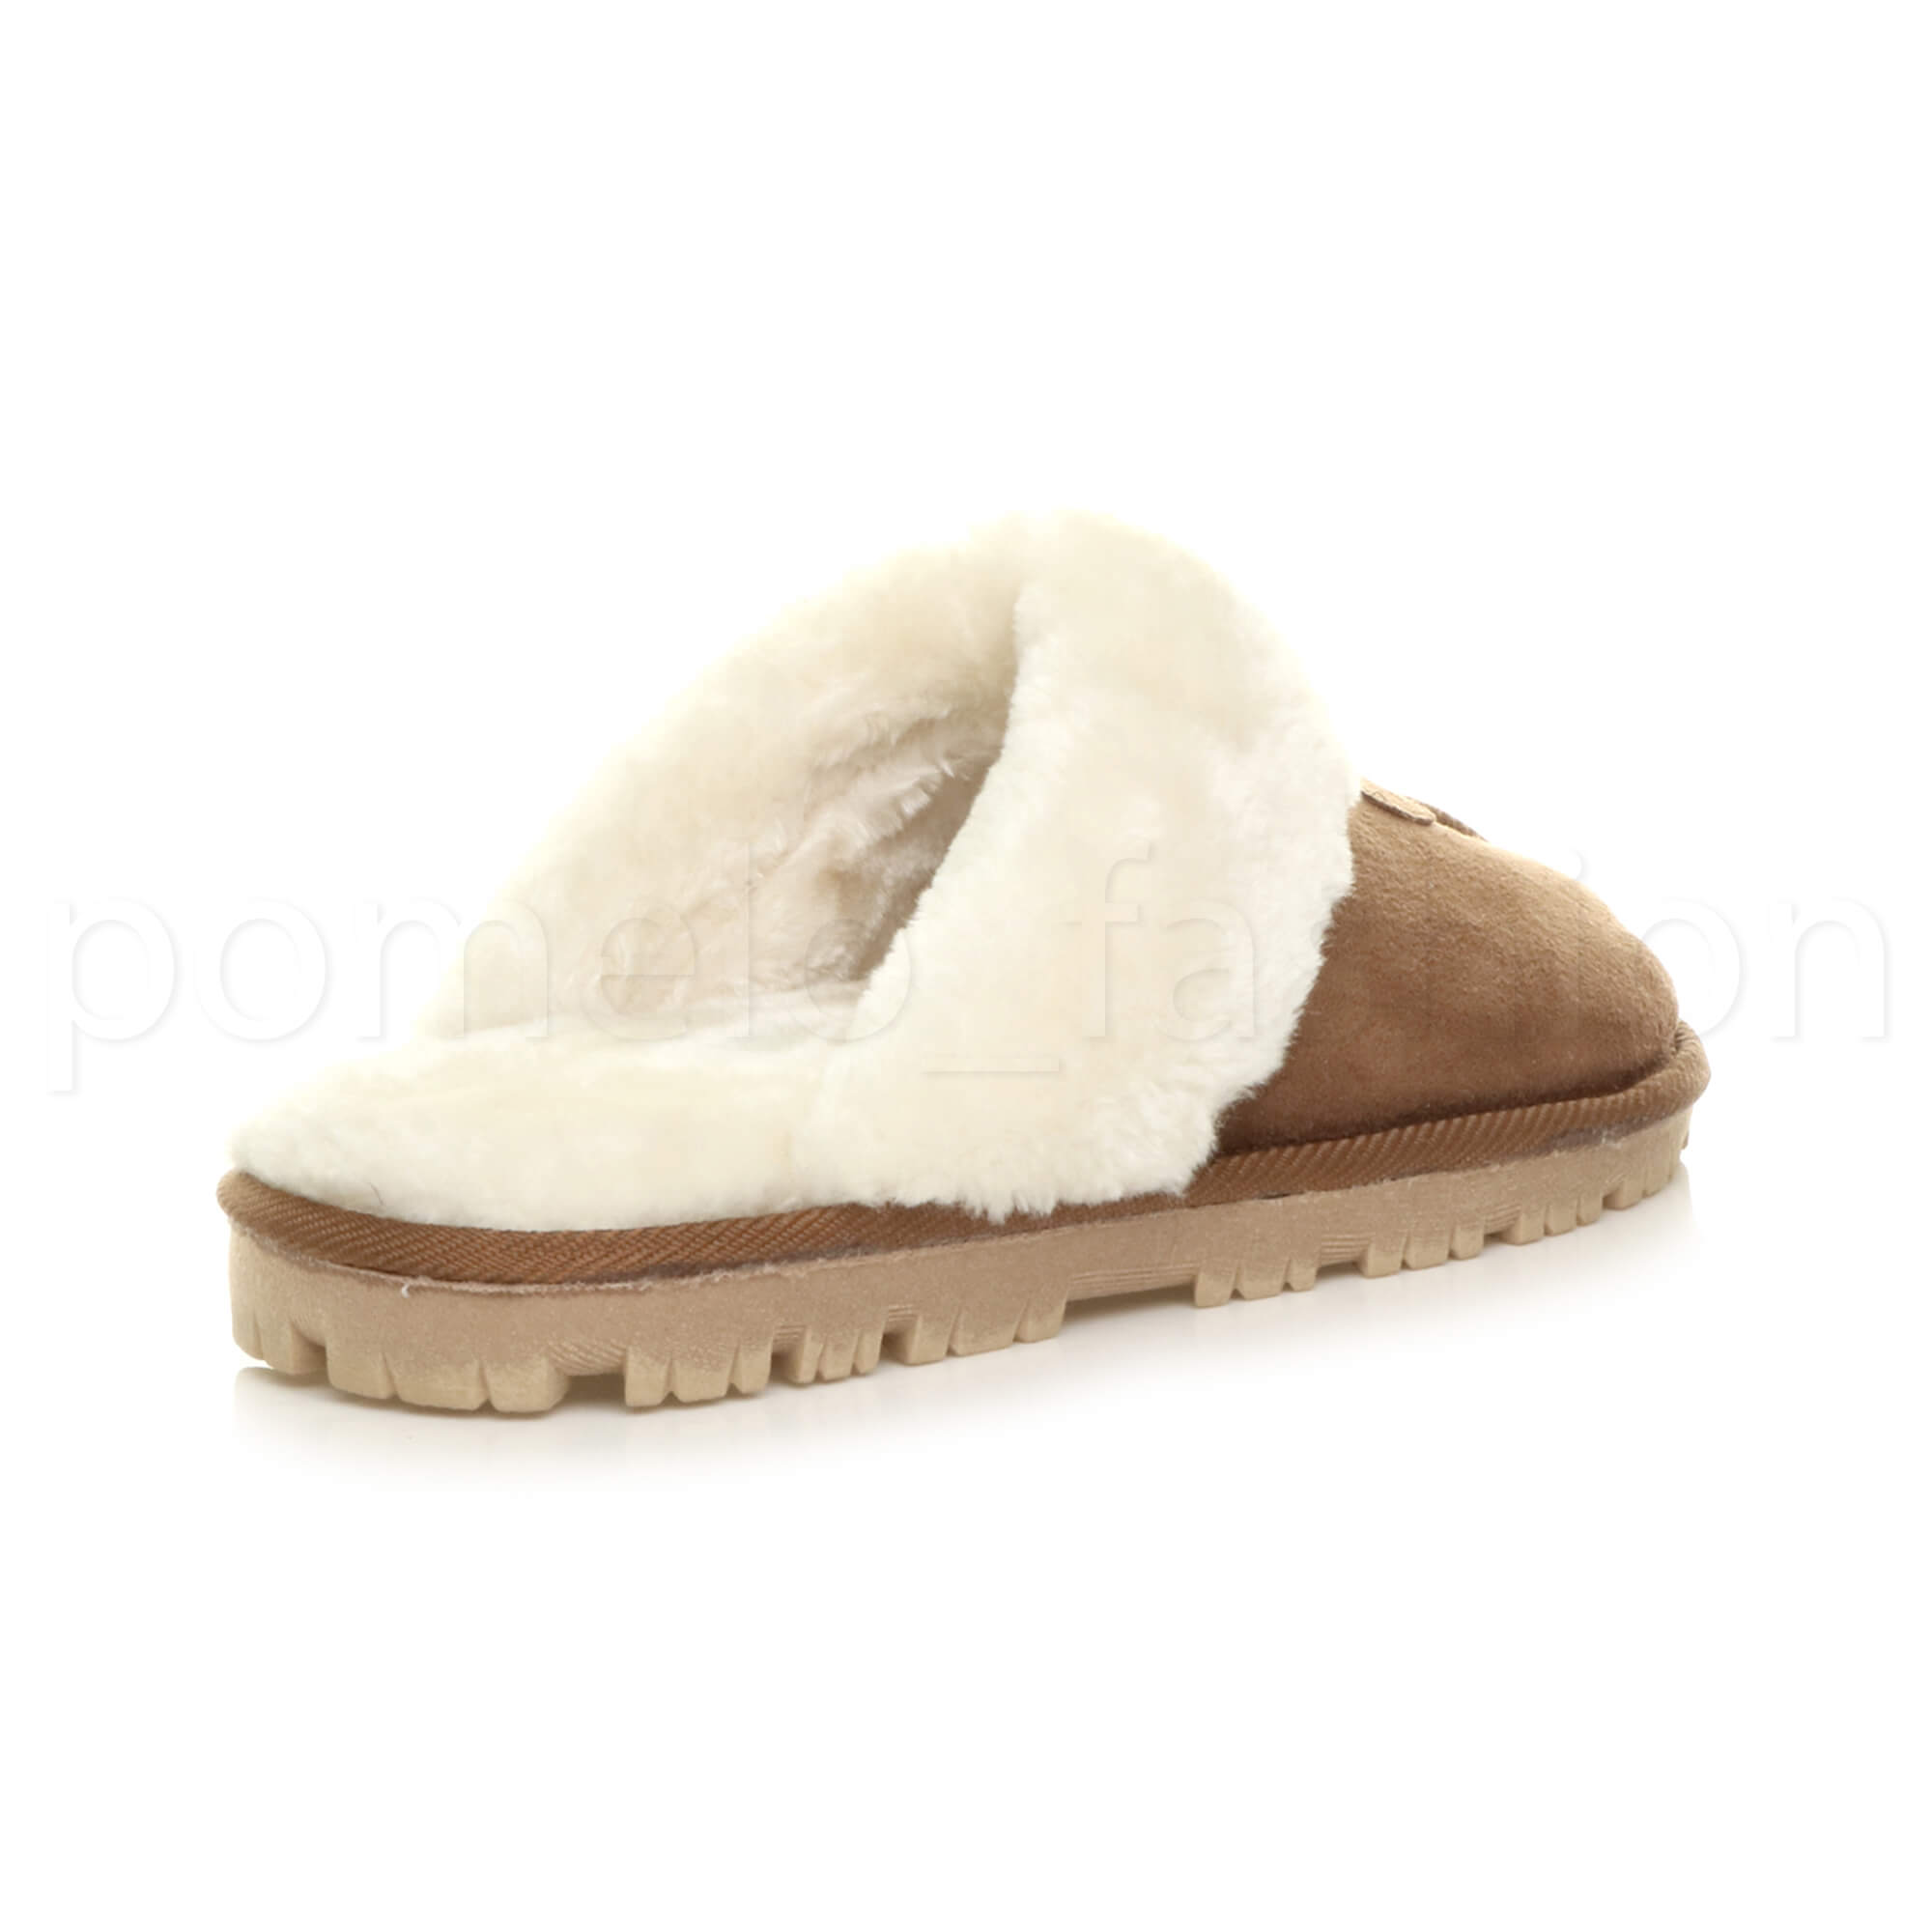 WOMENS-LADIES-FLAT-FUR-LINED-COMFORTABLE-WINTER-MULES-SLIPPERS-HOUSE-SHOES-SIZE thumbnail 47